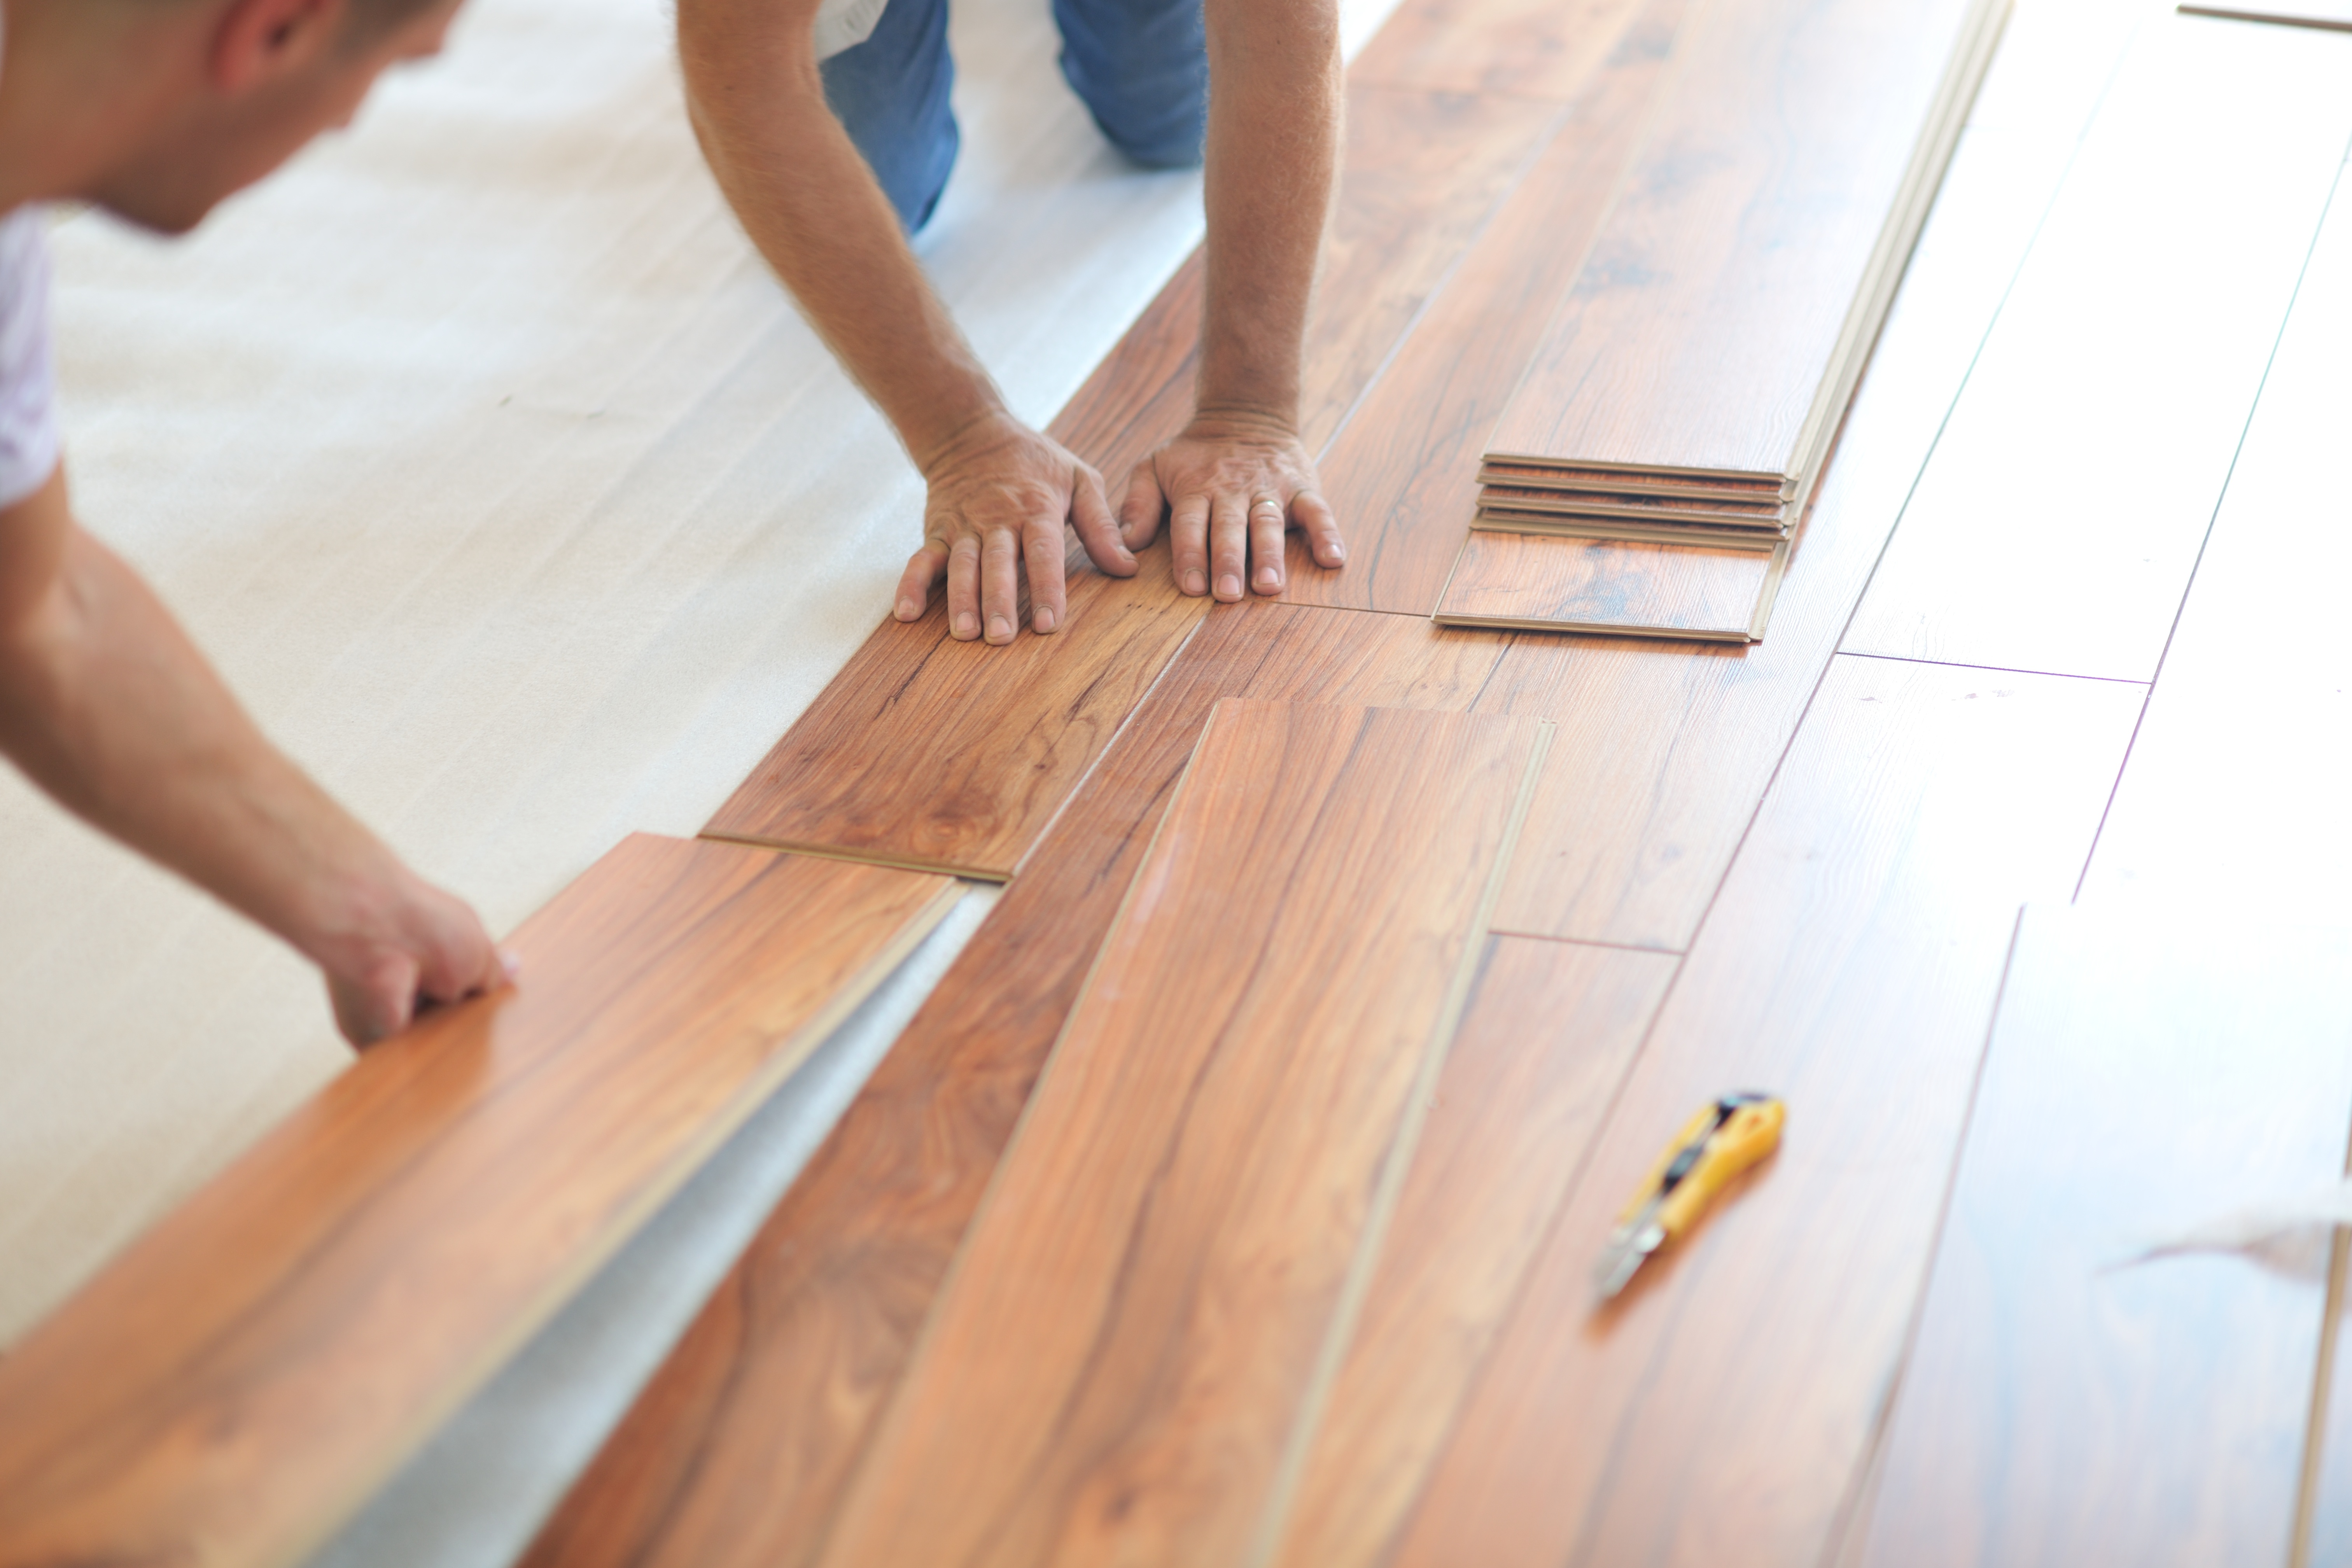 Latest News About Flooring Company